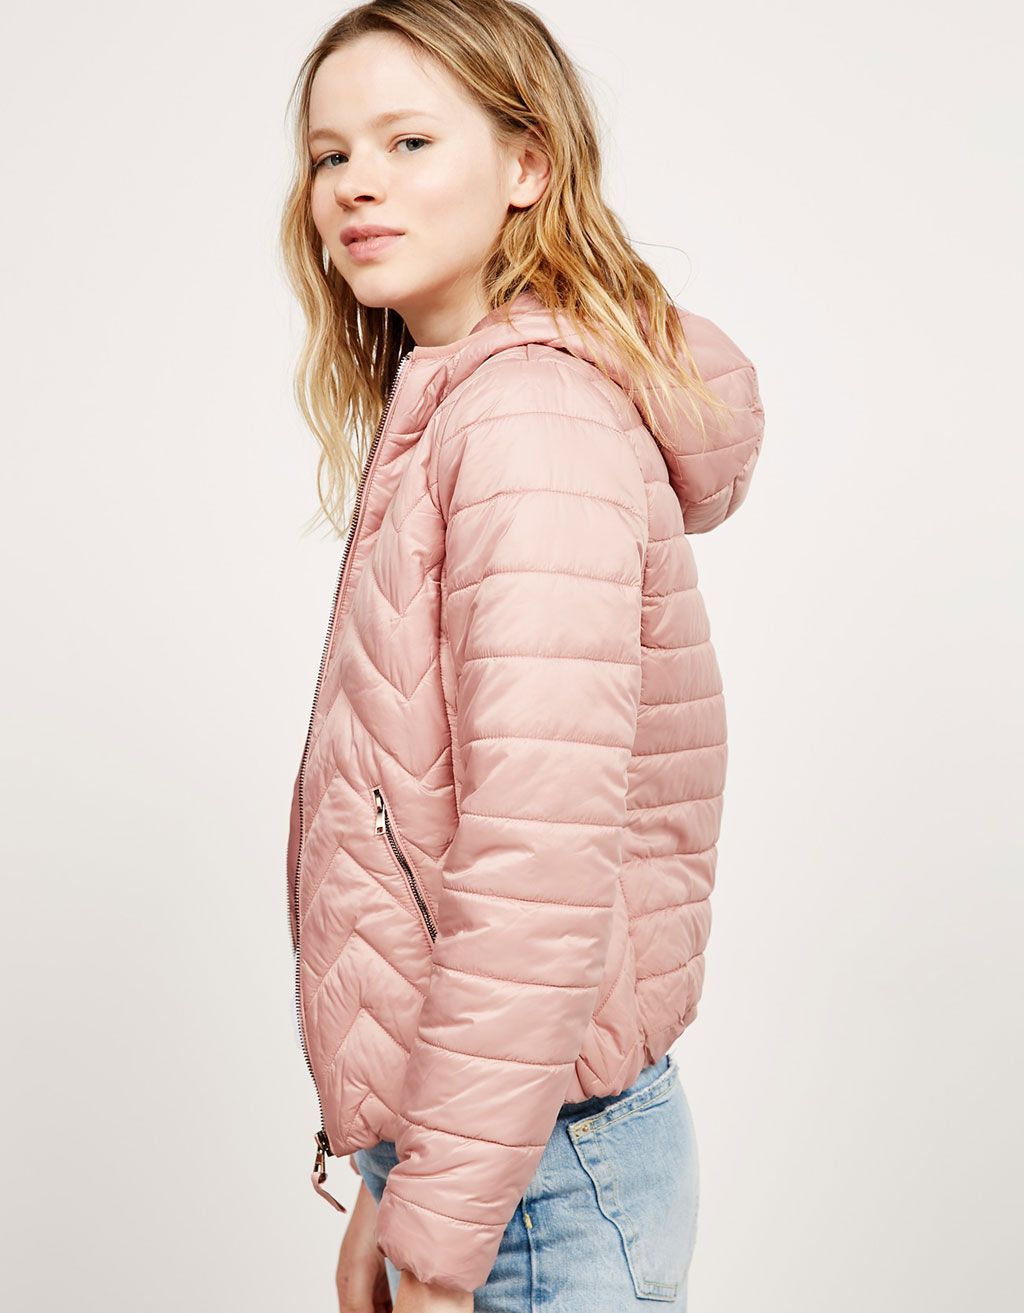 f3b8f9677832 BSK hooded fine nylon jacket. Discover this and many more items in Bershka  with…